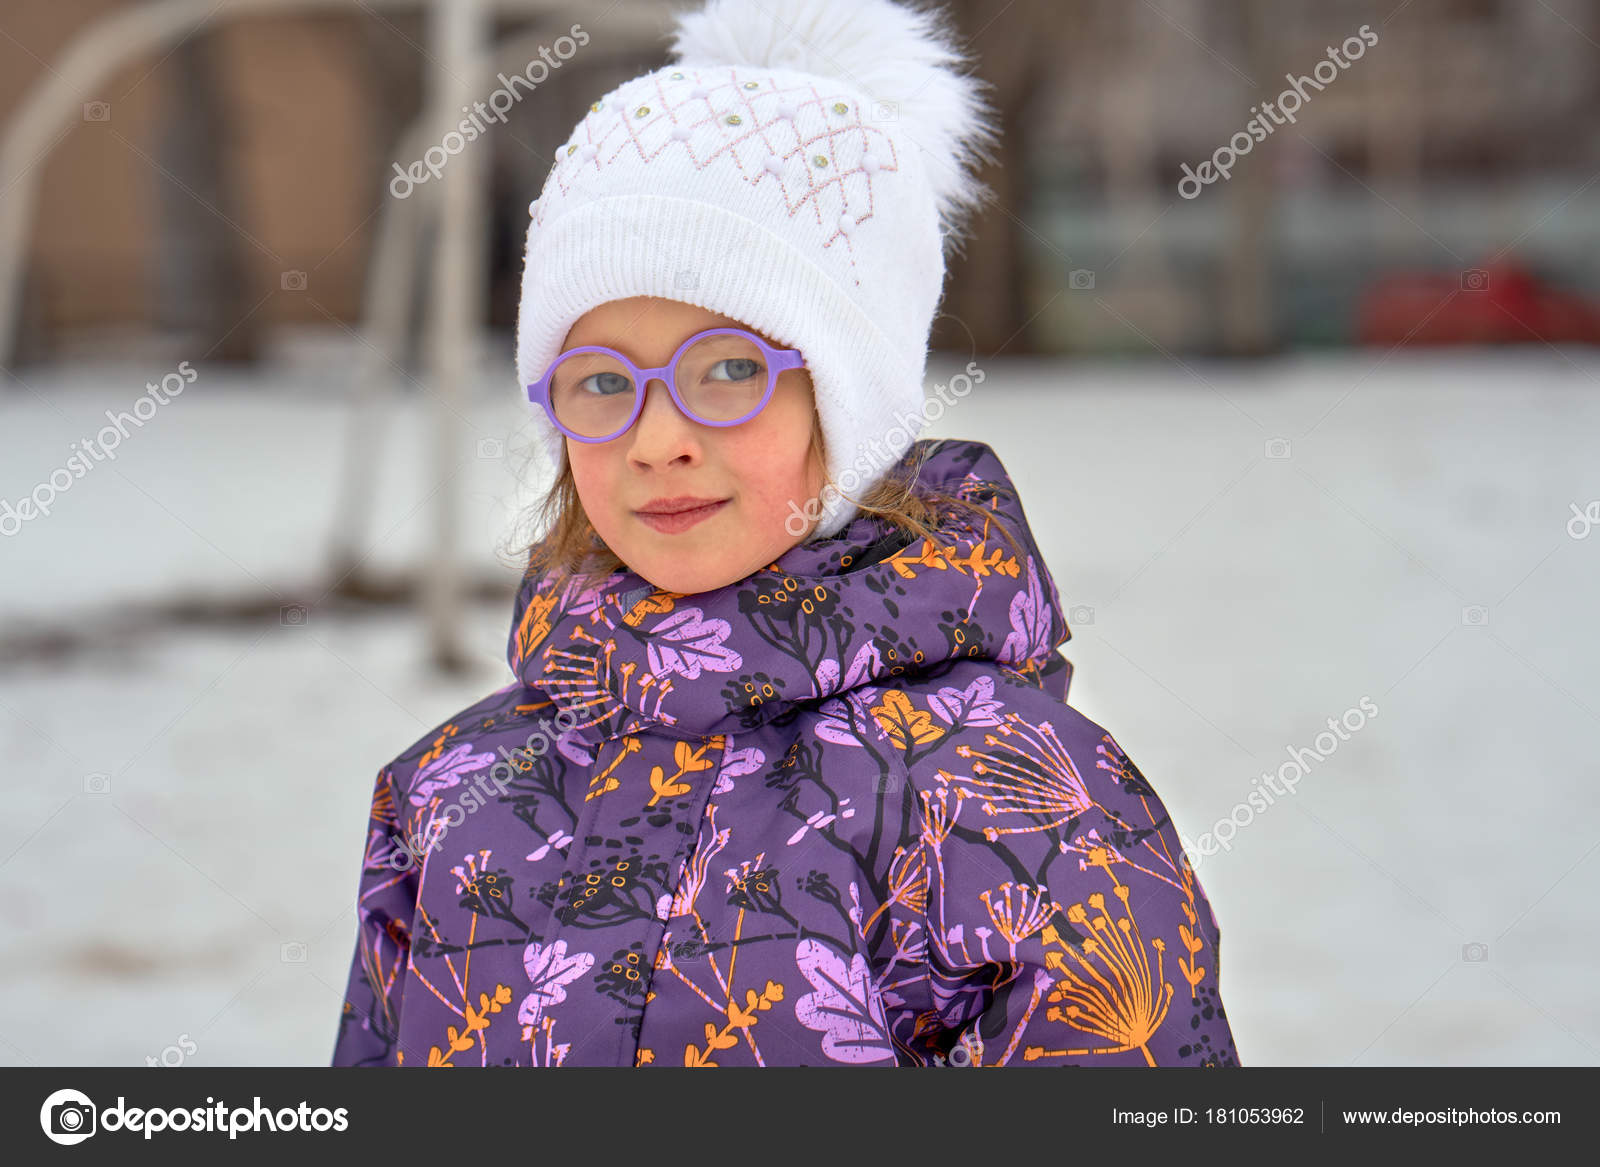 661c0ab63 Portrait Child Girl Glasses Winter Walk Girl Dressed Hat Jacket ...